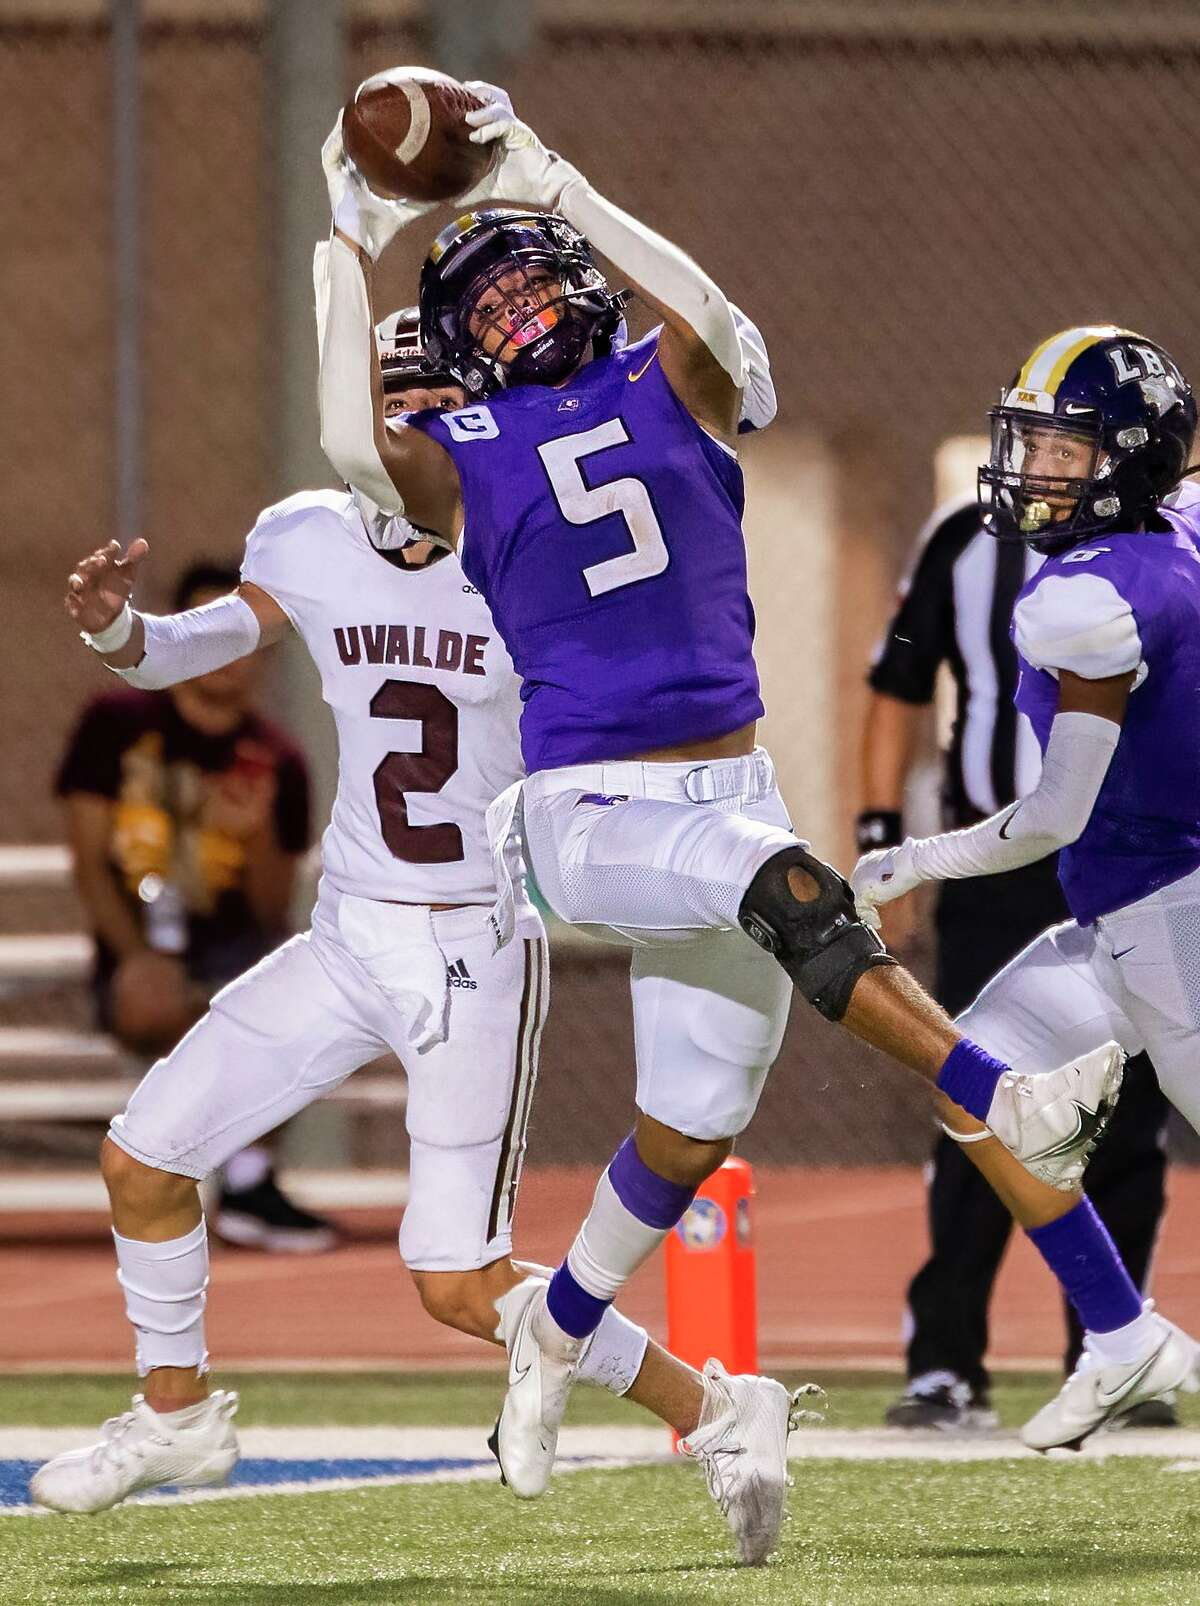 LBJ's Azael Rebollar gets an interception in the red zone against Uvalde on Friday, Sept. 17, 2021 at the SAC.